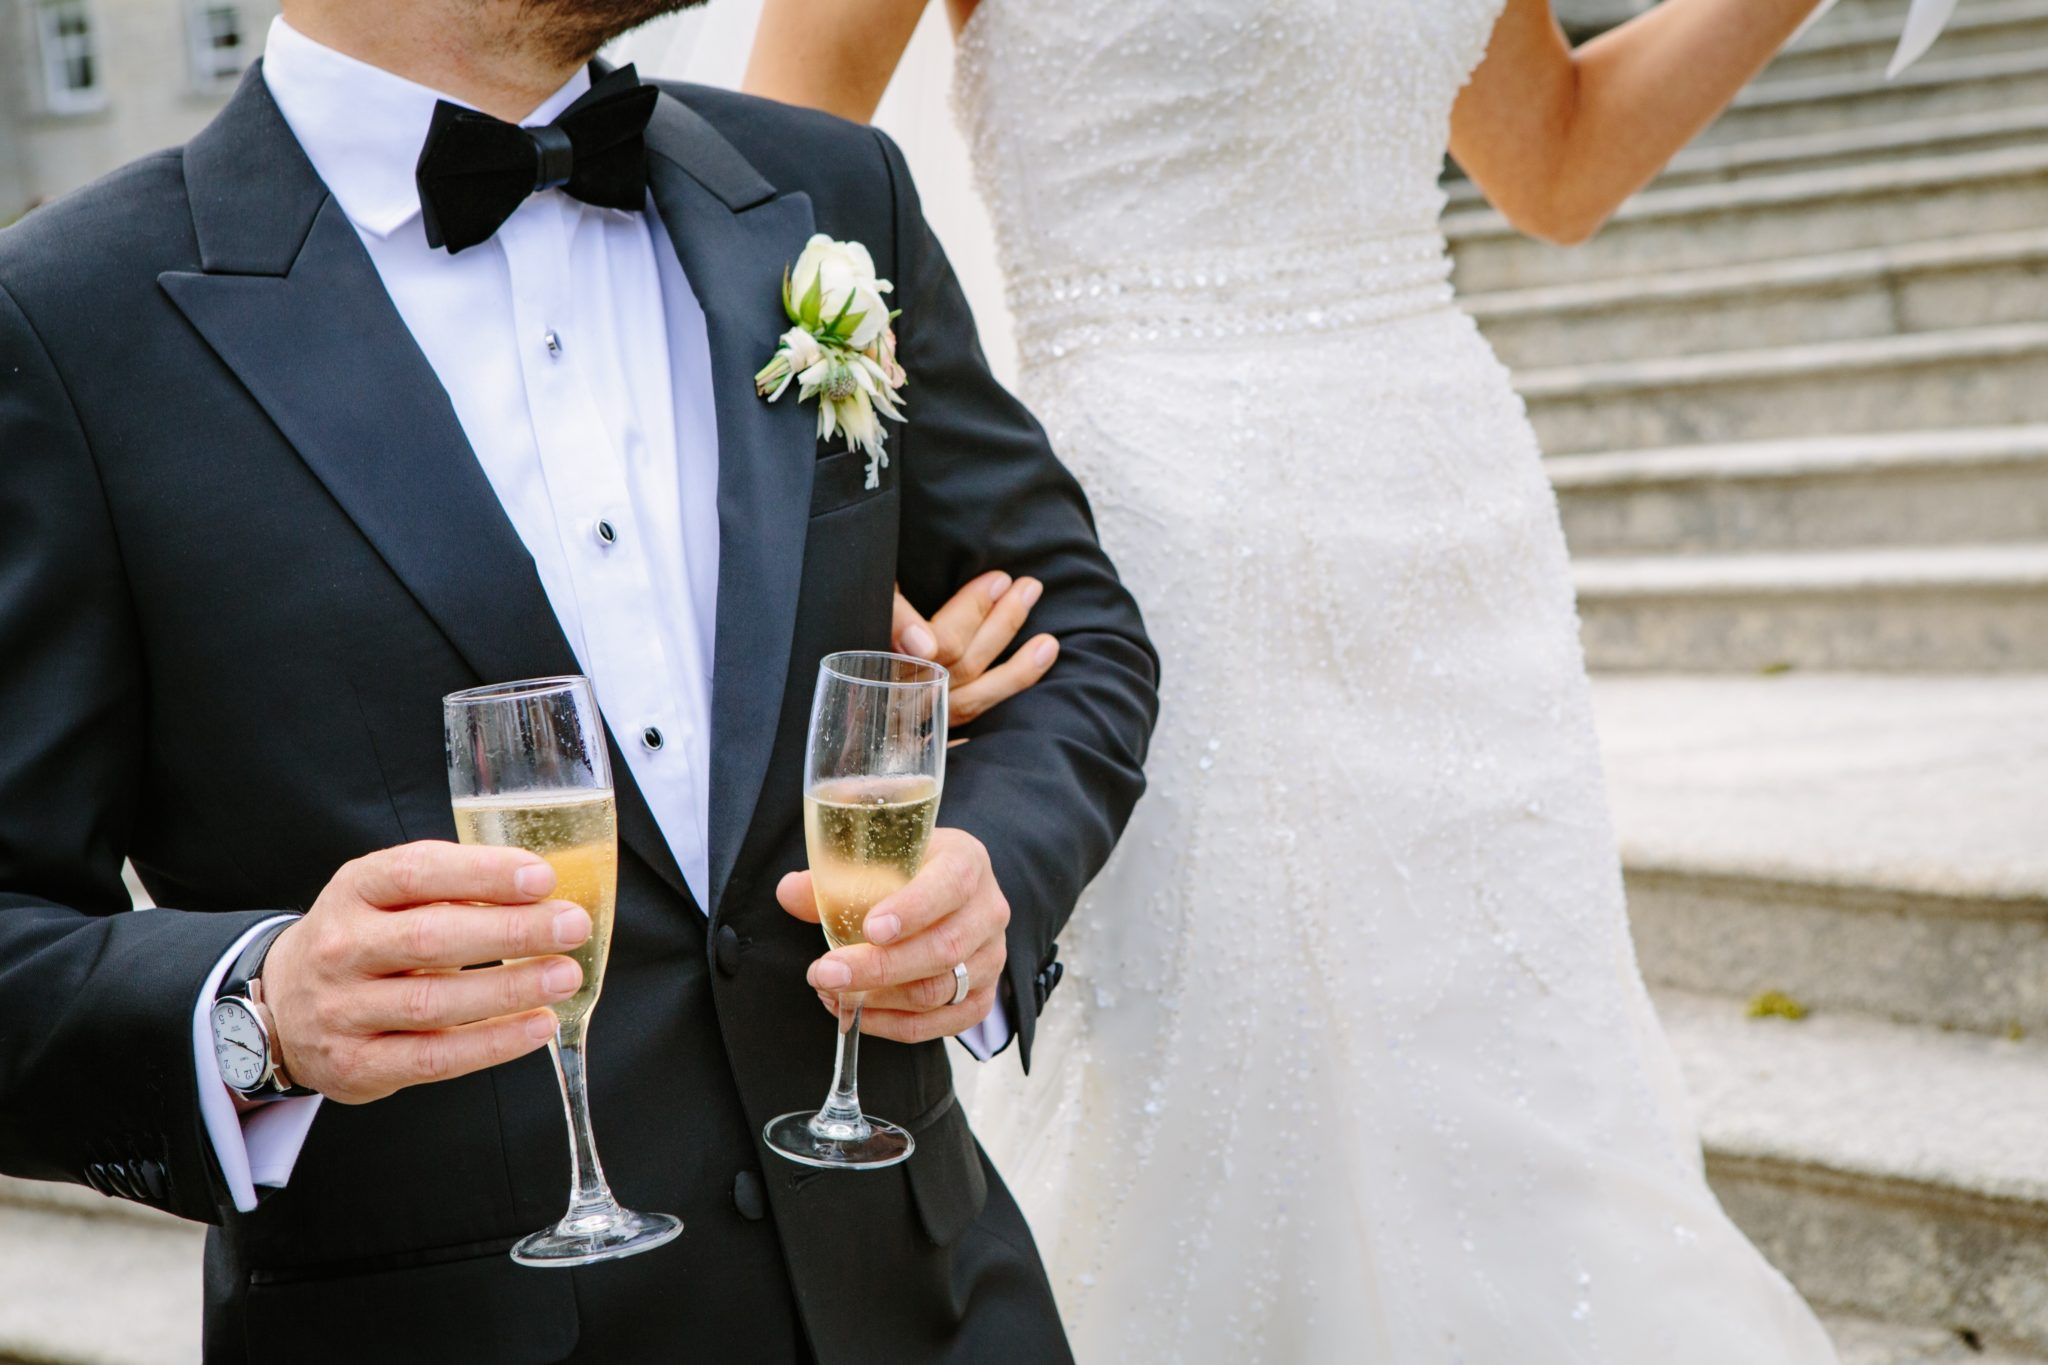 Groom wearing tuxedo holding champagne glasses with bride on his arm